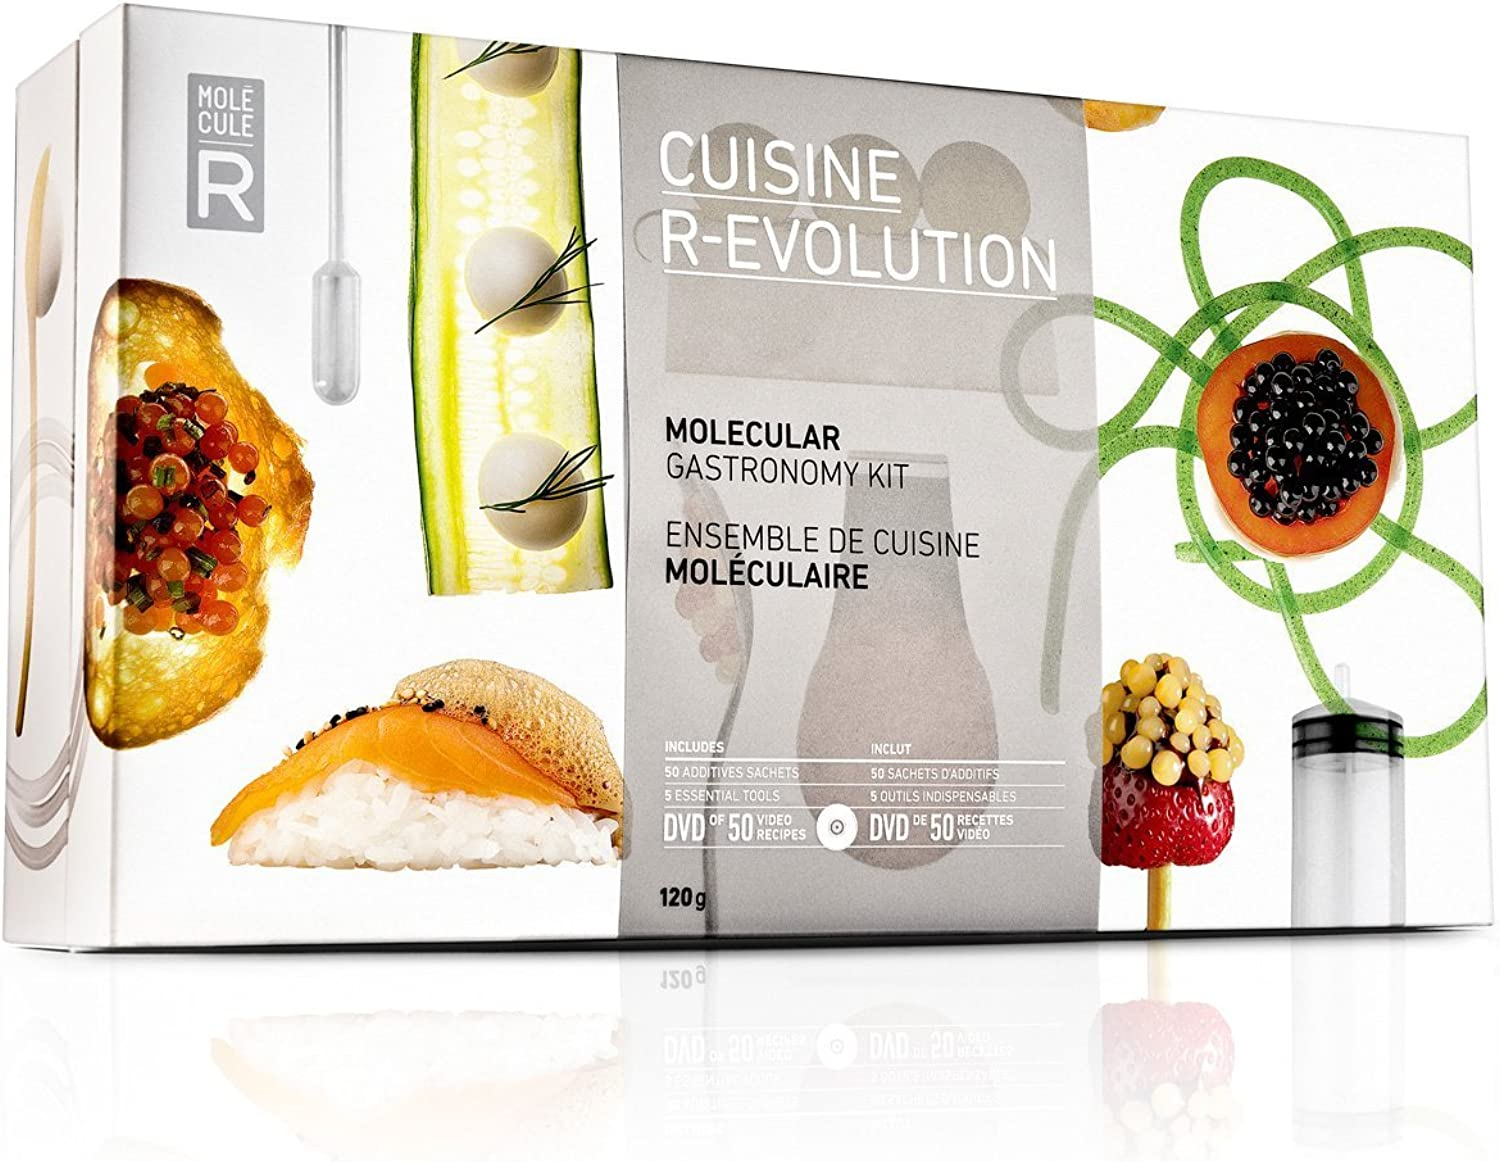 Molecule-R Cuisine R-Evolution (Now With Silicon Mold)